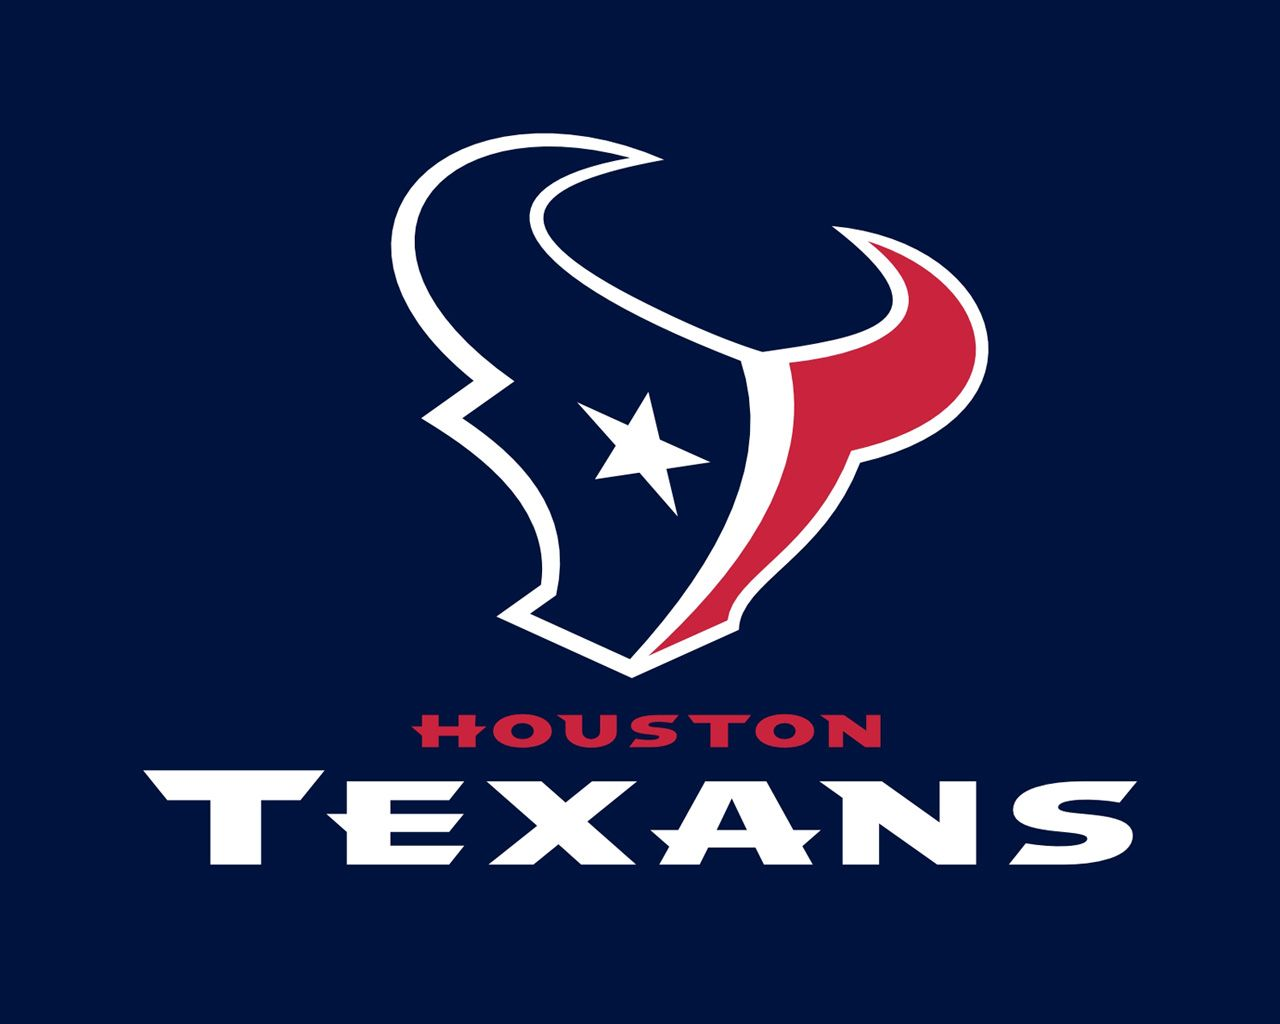 Pics photos houston texans logo chris creamer s sports - Houston Texans Wallpaper Hd Best Wallpaper Hd